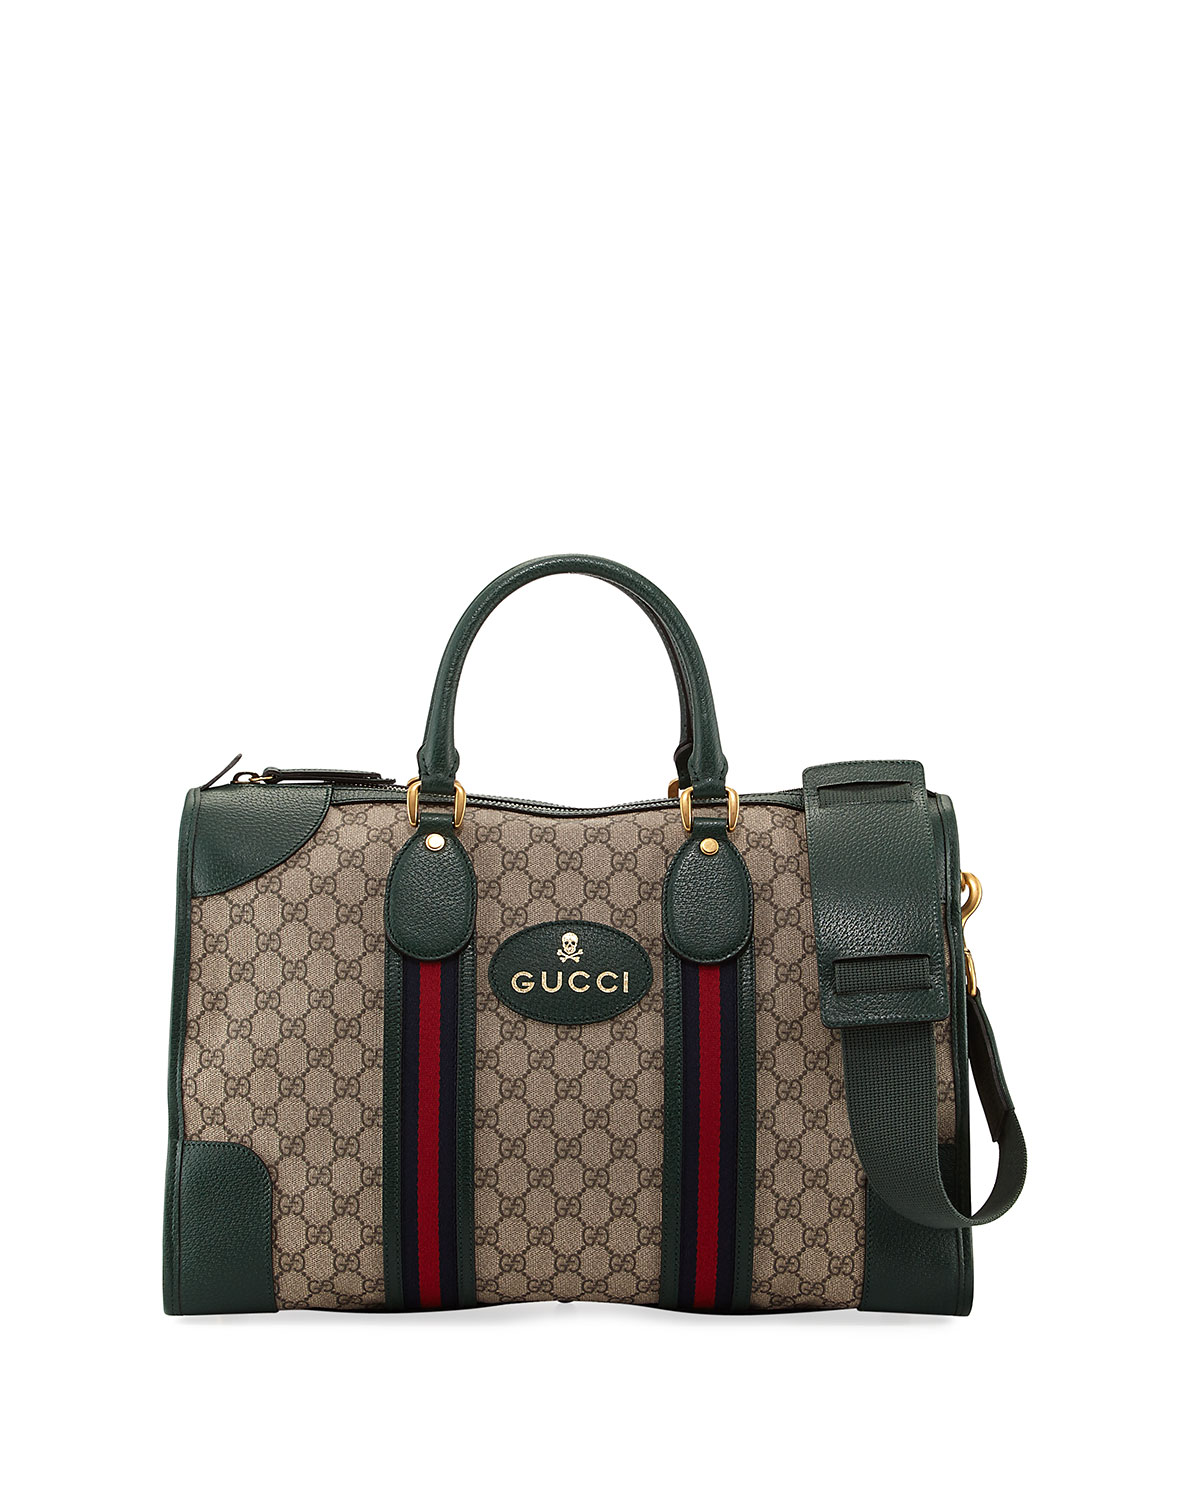 f76eb9bc0ab7 Gucci Courier Soft GG Supreme Duffel Bag, Beige/Brown/Green | Neiman ...